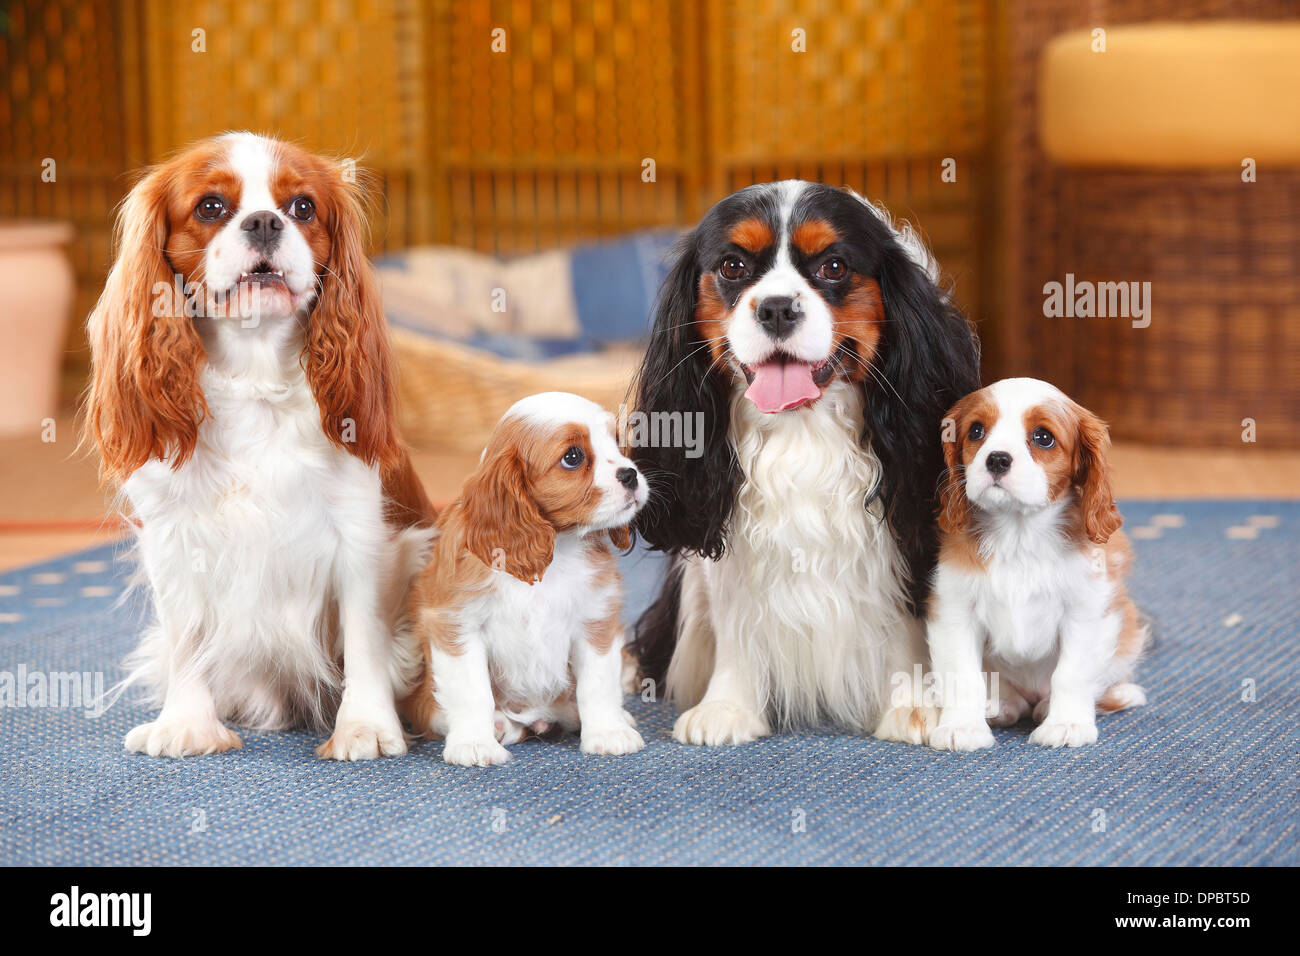 Two Cavalier King Charles spaniel with two puppies sitting on a carpet - Stock Image